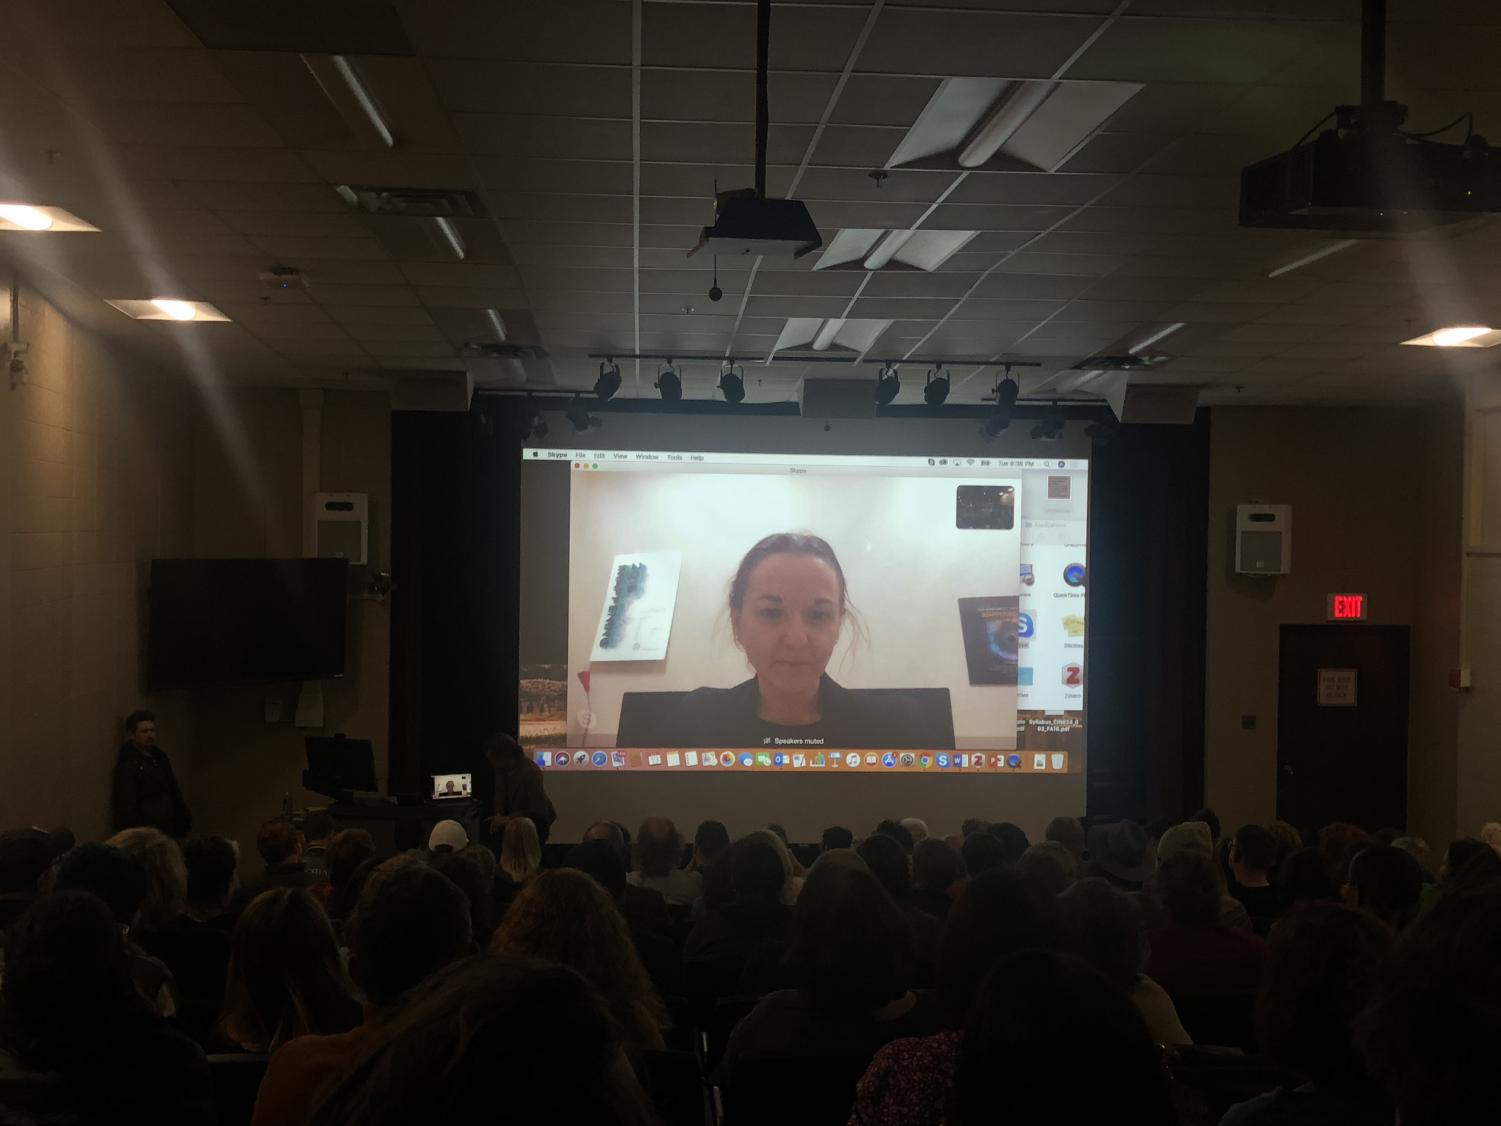 Director of 'Hillbilly' video chatting viewers on campus.